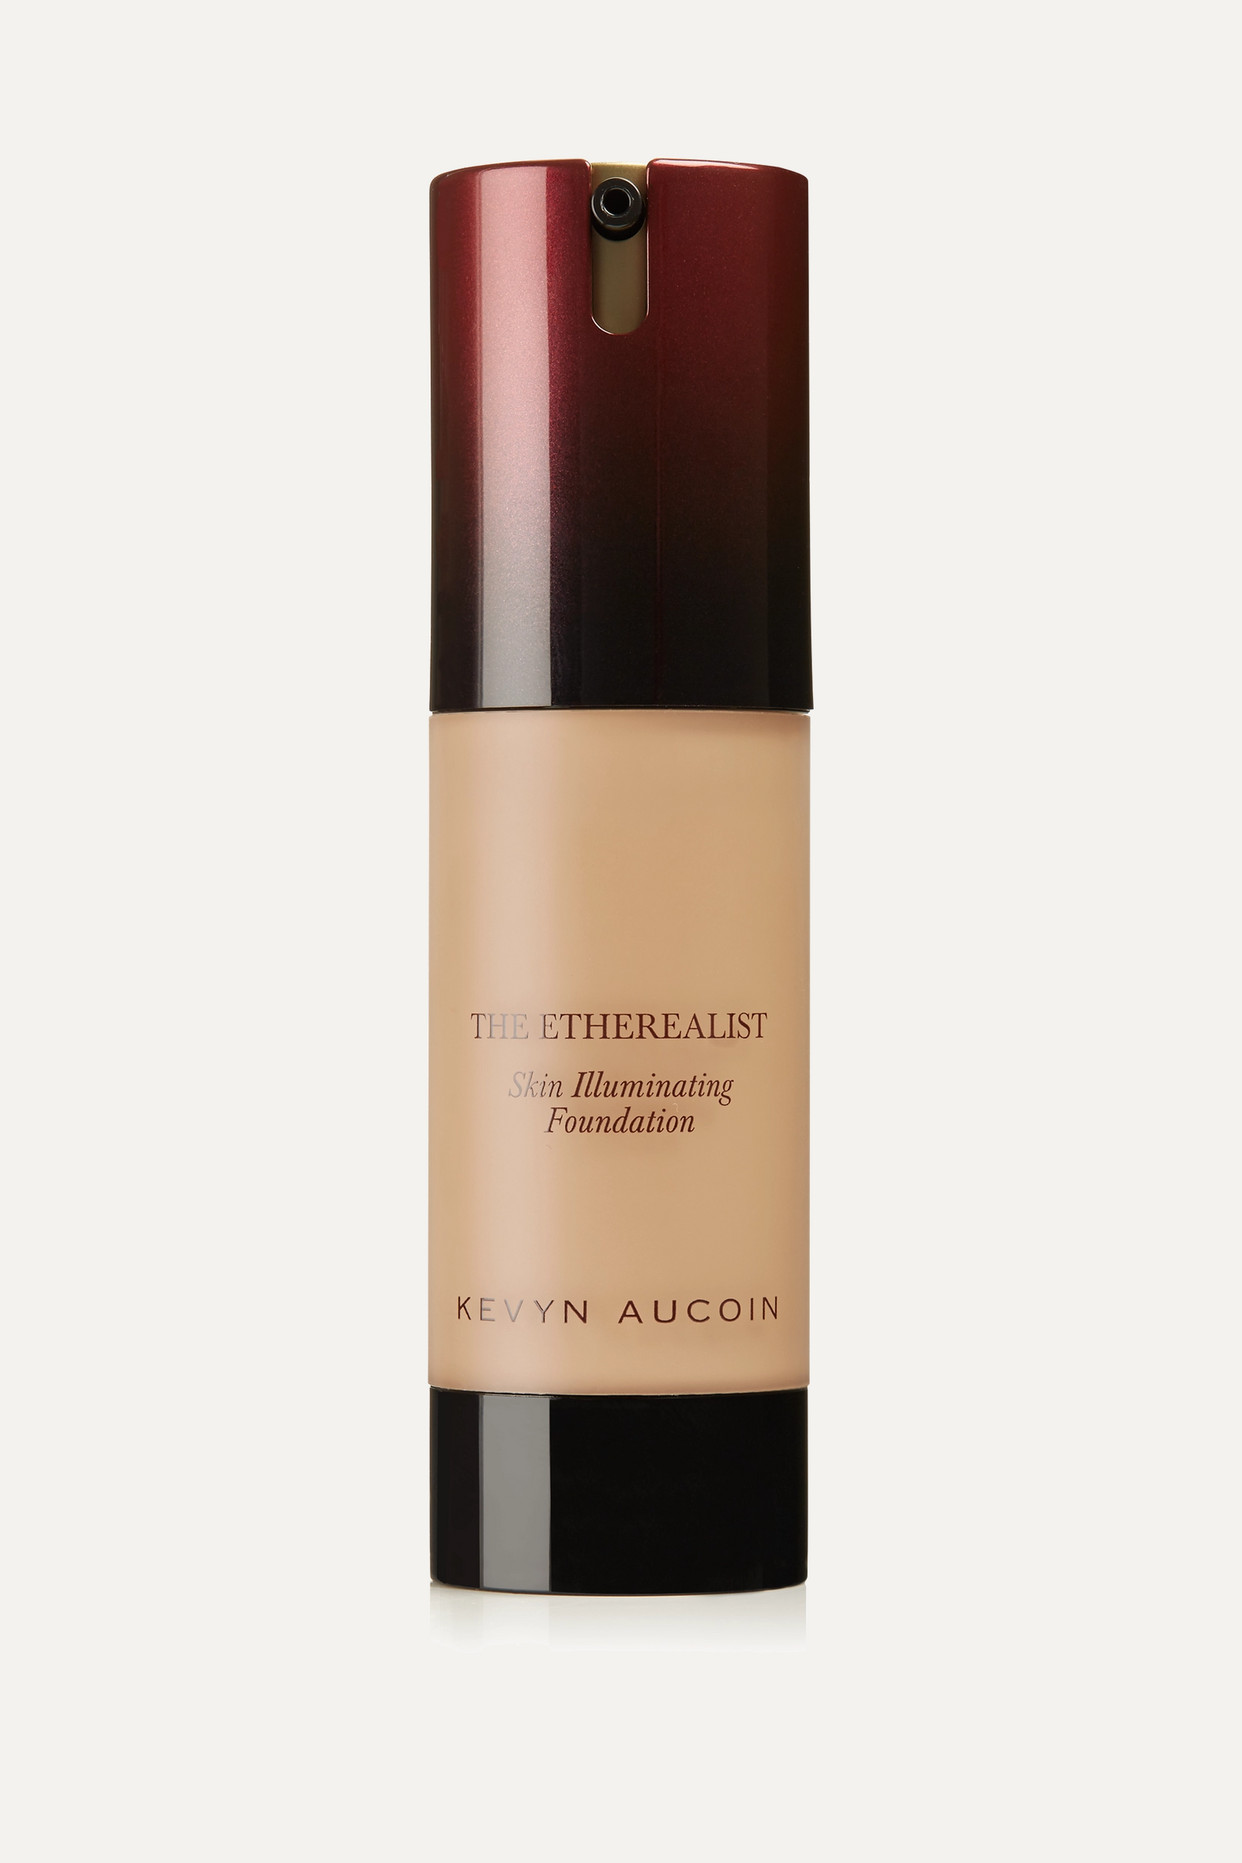 KEVYN AUCOIN - The Etherealist Skin Illuminating Foundation - Light Ef05 - Neutrals - one size